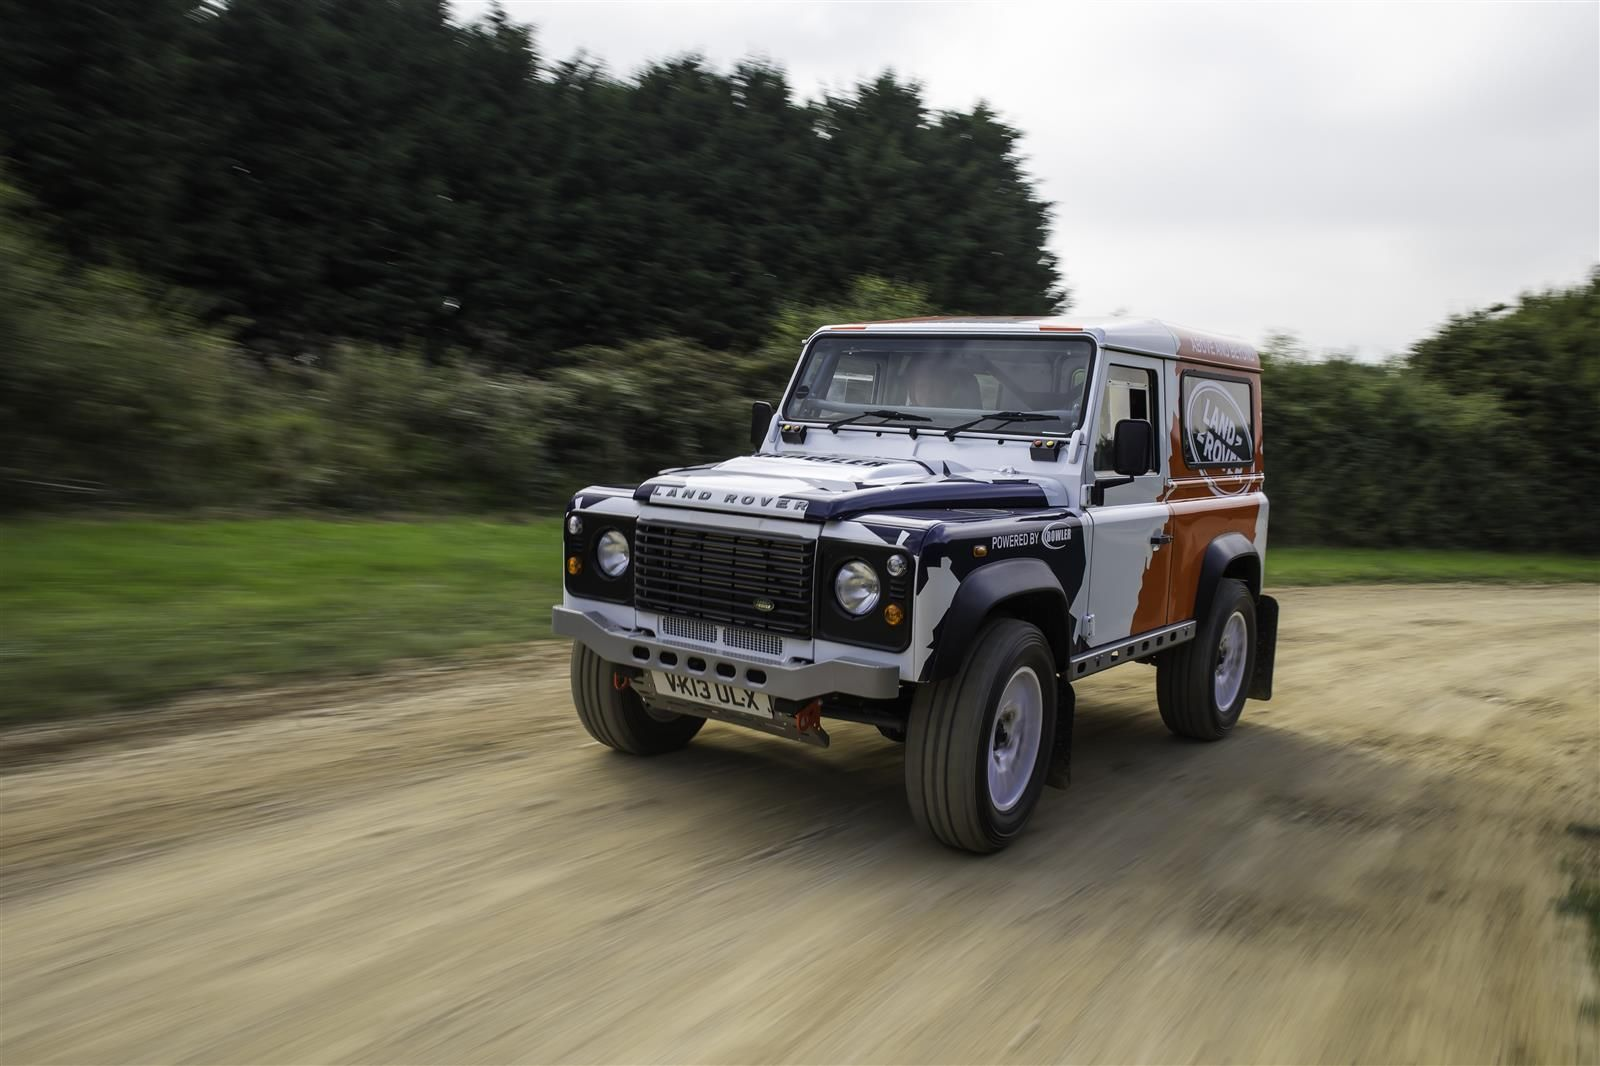 Land rover bowler photo - 10